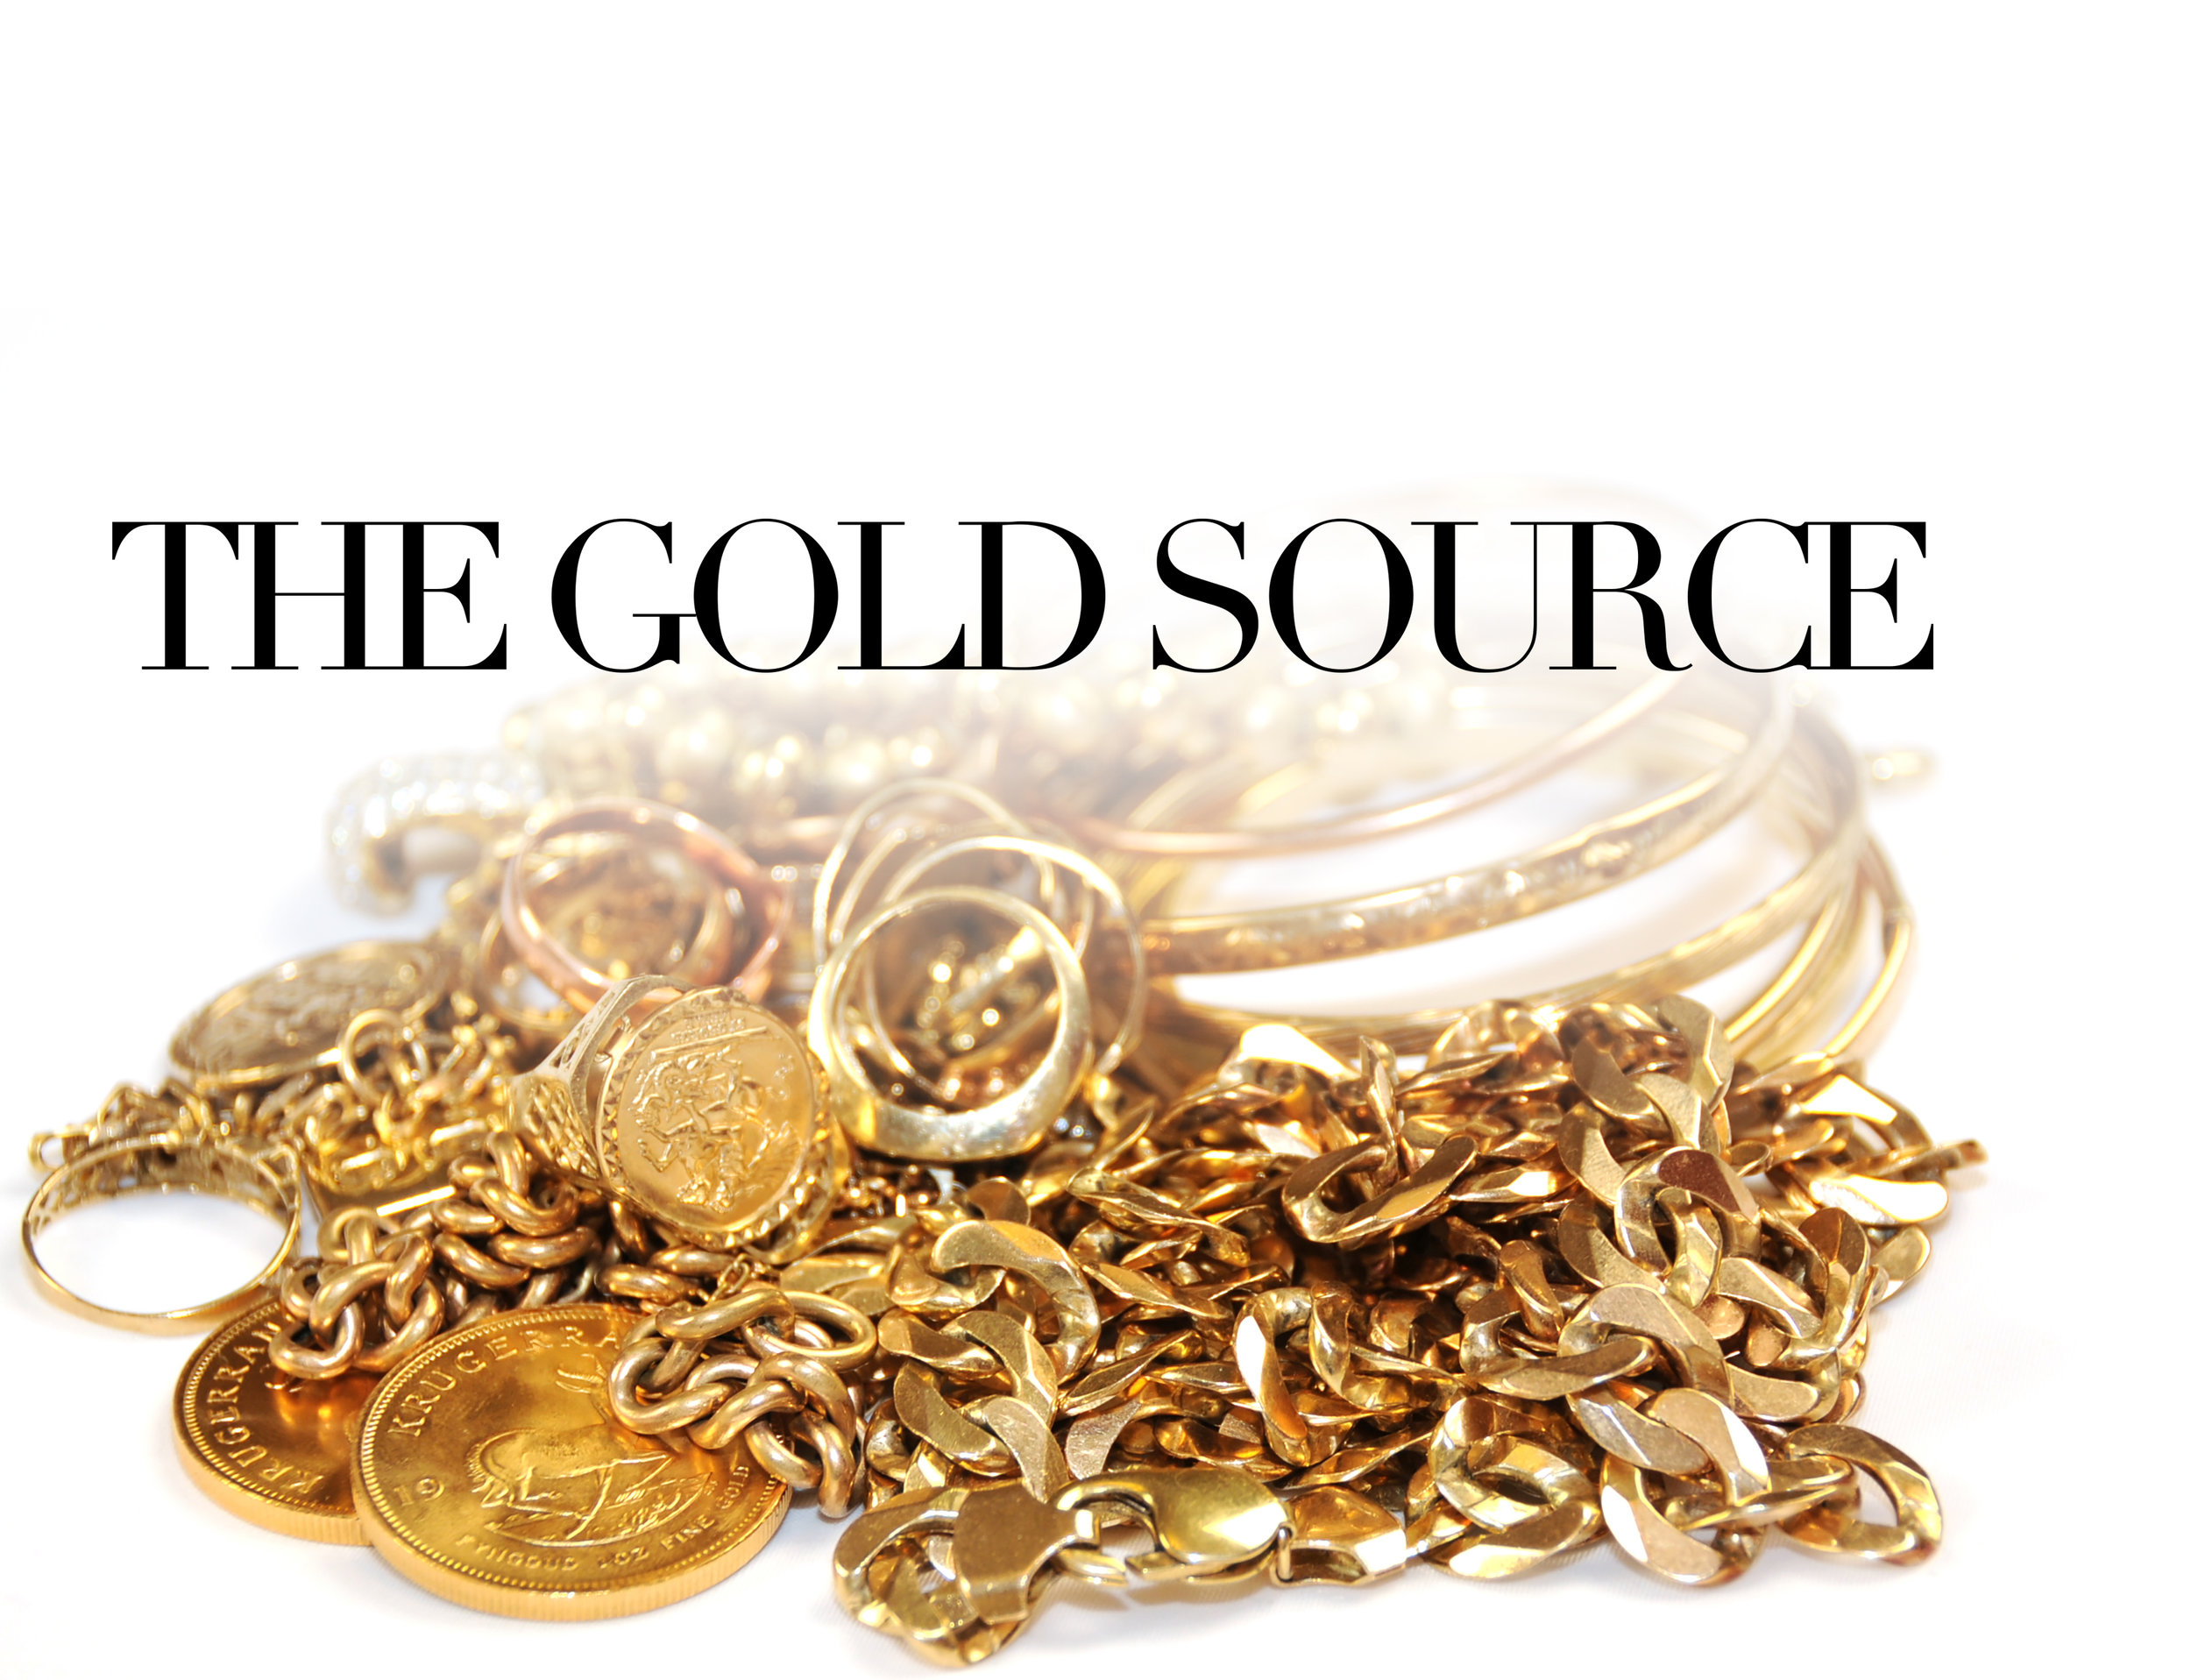 Goldsource MASTER HOME PAGE02.jpg